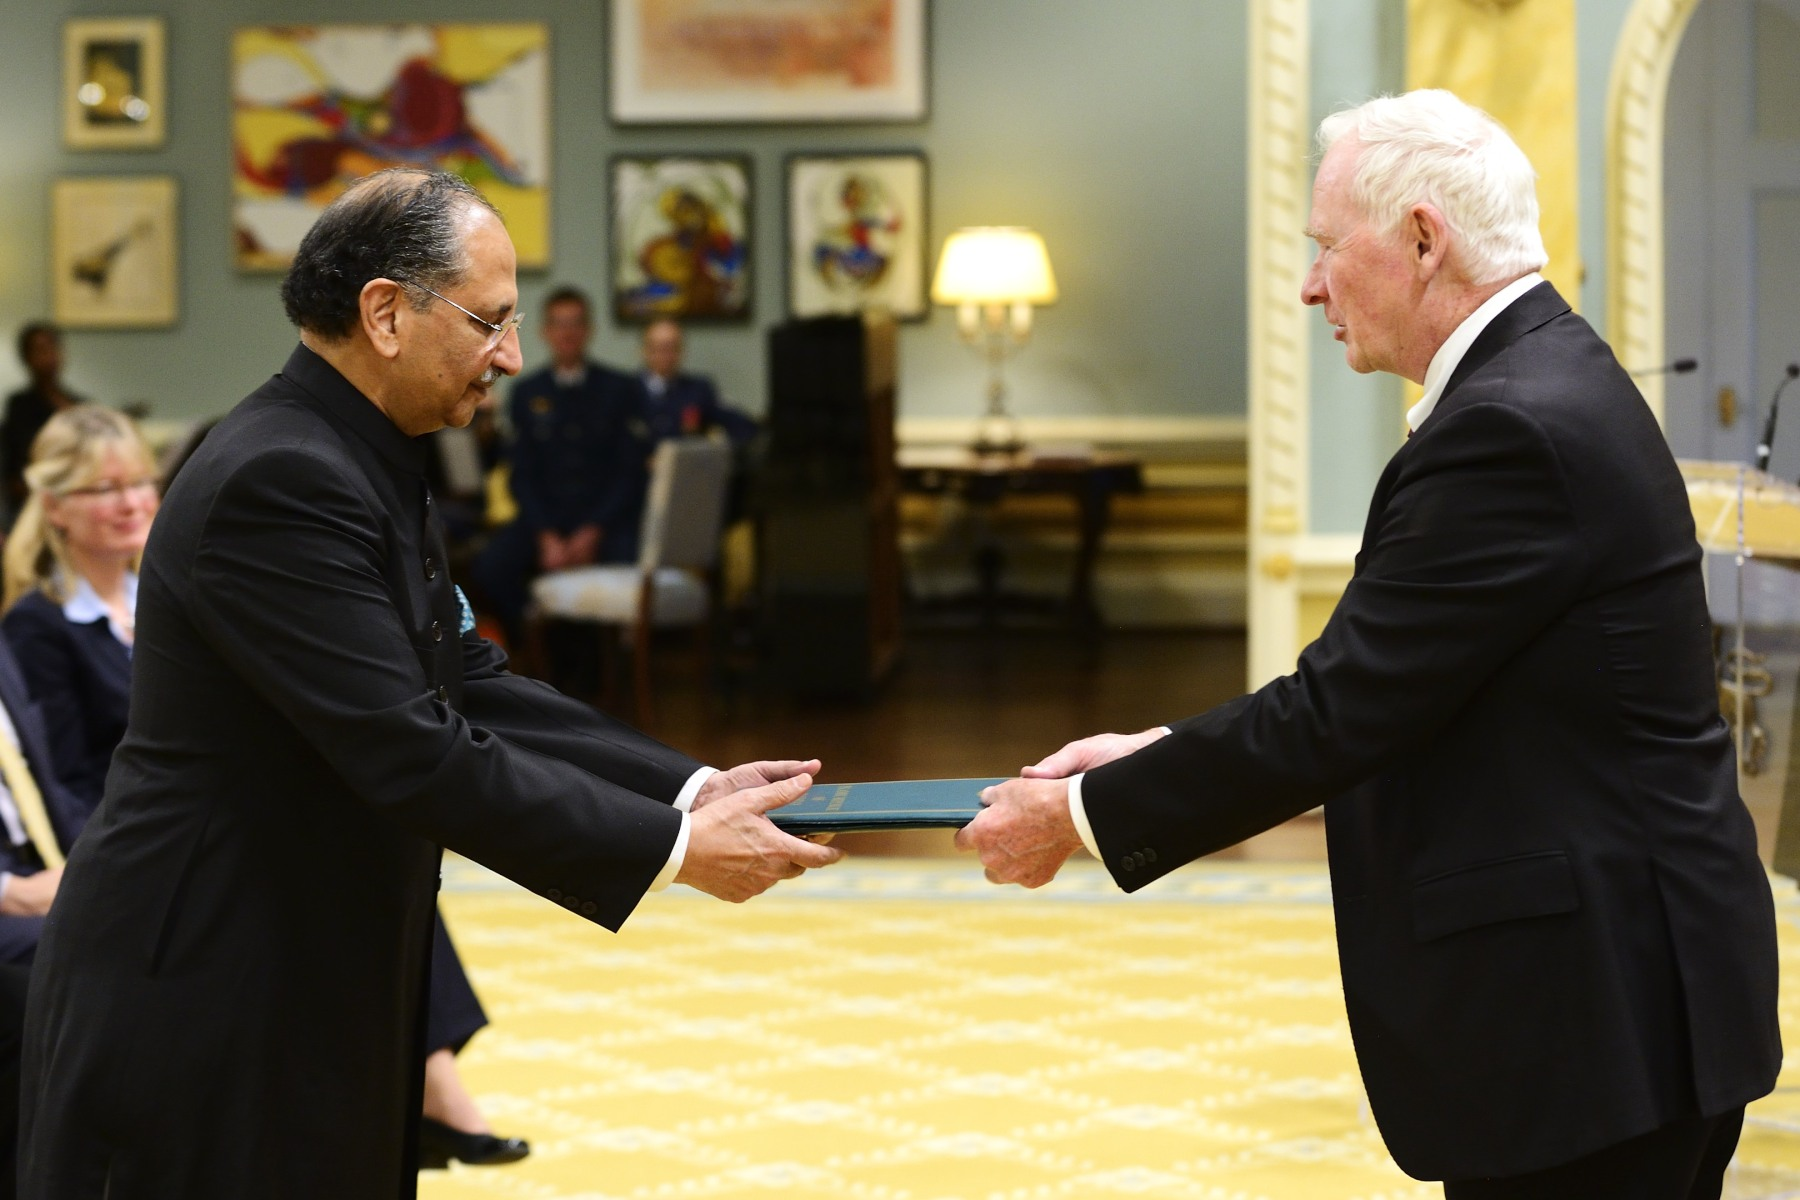 His Excellency Tariq Azim Khan, High Commissioner for the Islamic Republic of Pakistan, was the first to present his letters of credence to the Governor General.